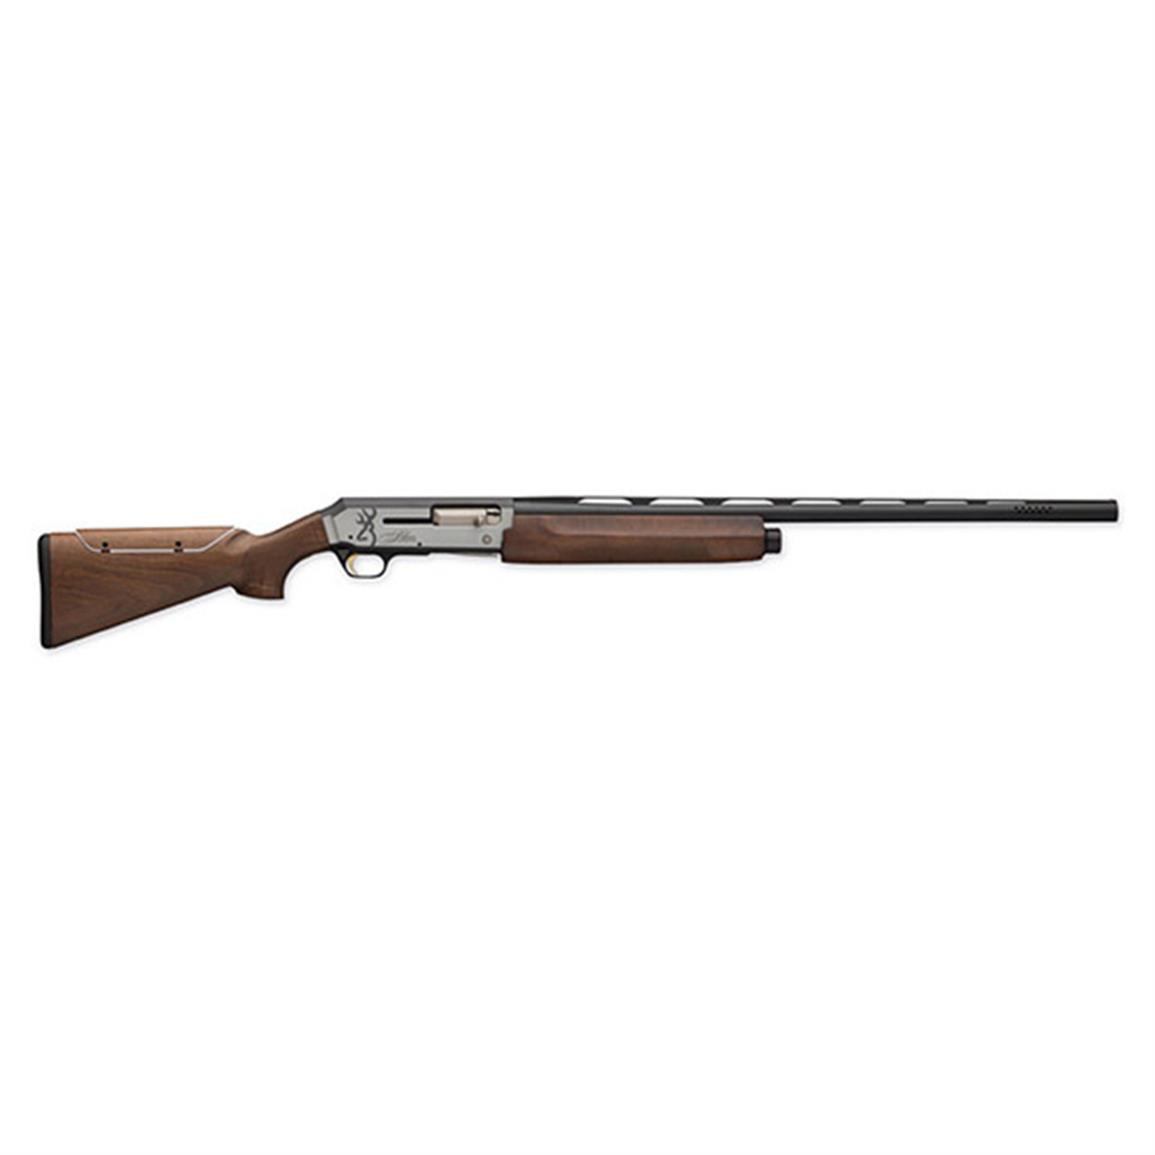 Browning Silver Sporting Micro Adjustable, Semi-automatic, 12 Gauge, 011404428, 023614401018